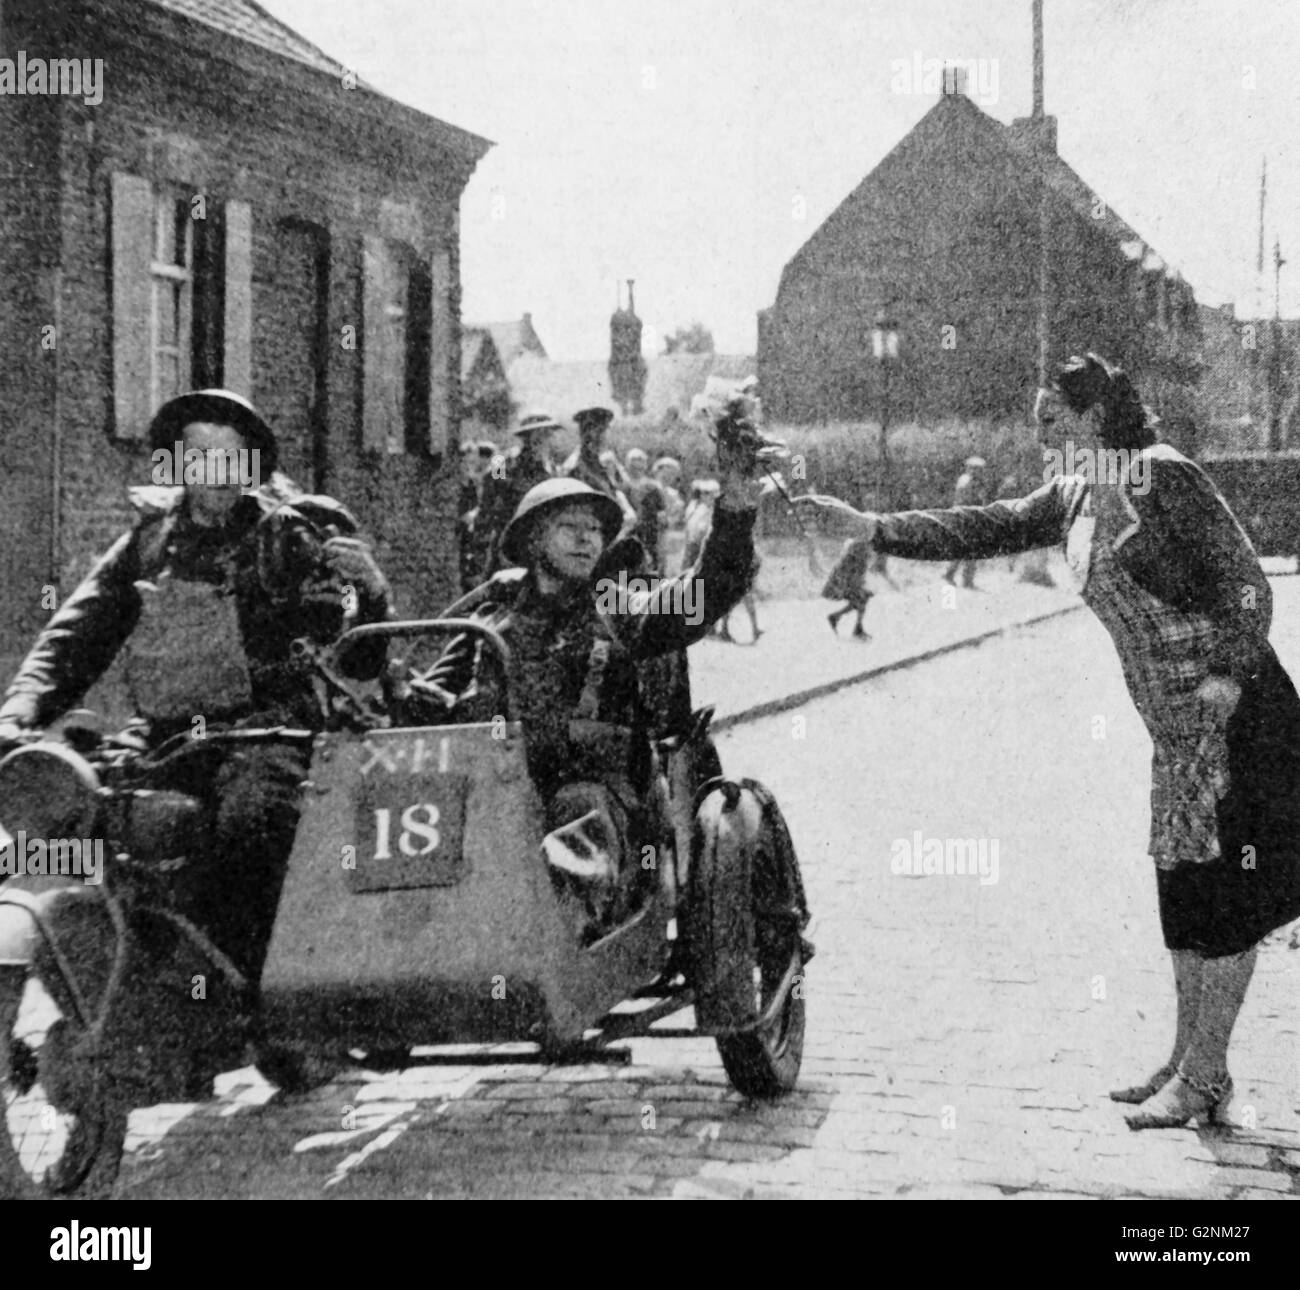 World war two: British soldiers greeted in Belgium during 1940 - Stock Image